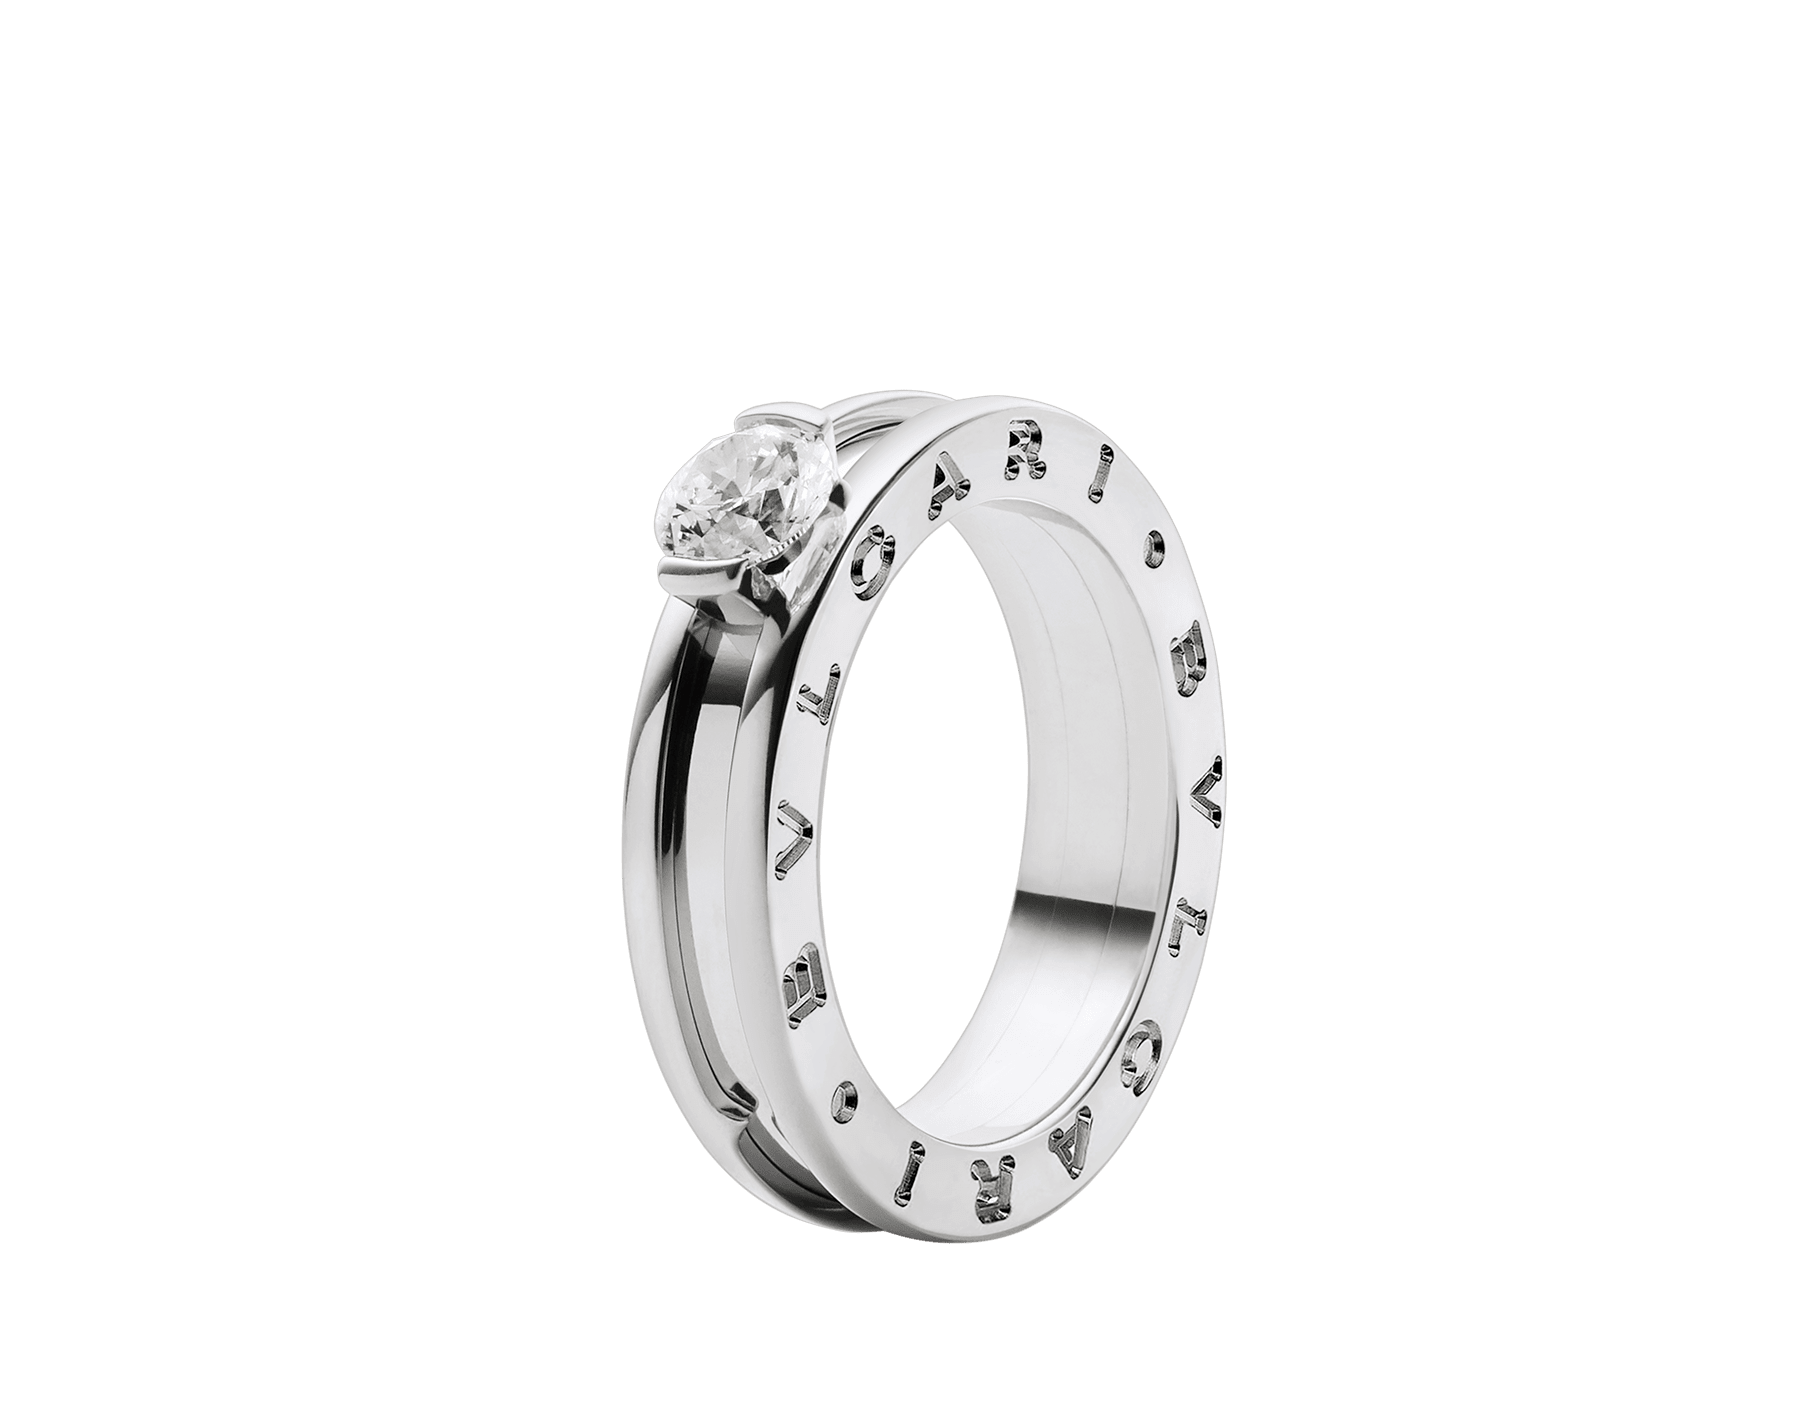 B.zero1 one-band 18 kt white gold ring with one round brilliant cut diamond. Available in 0.30 and 0.50 ct. 336277 image 1